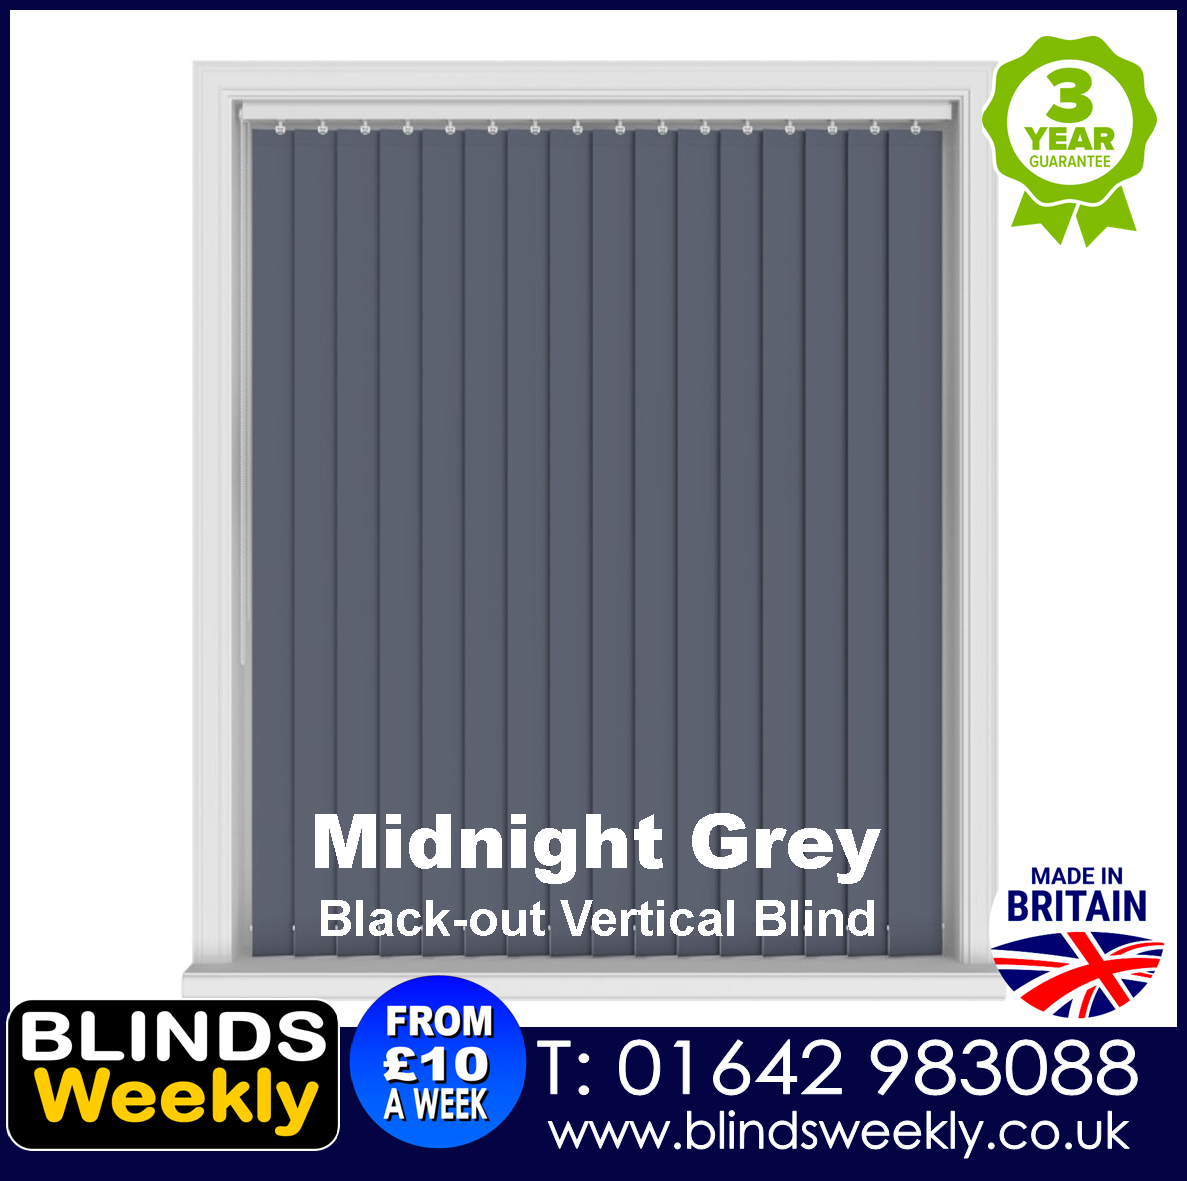 Blinds Weekly Blackout Vertical Blind - Midnight Grey